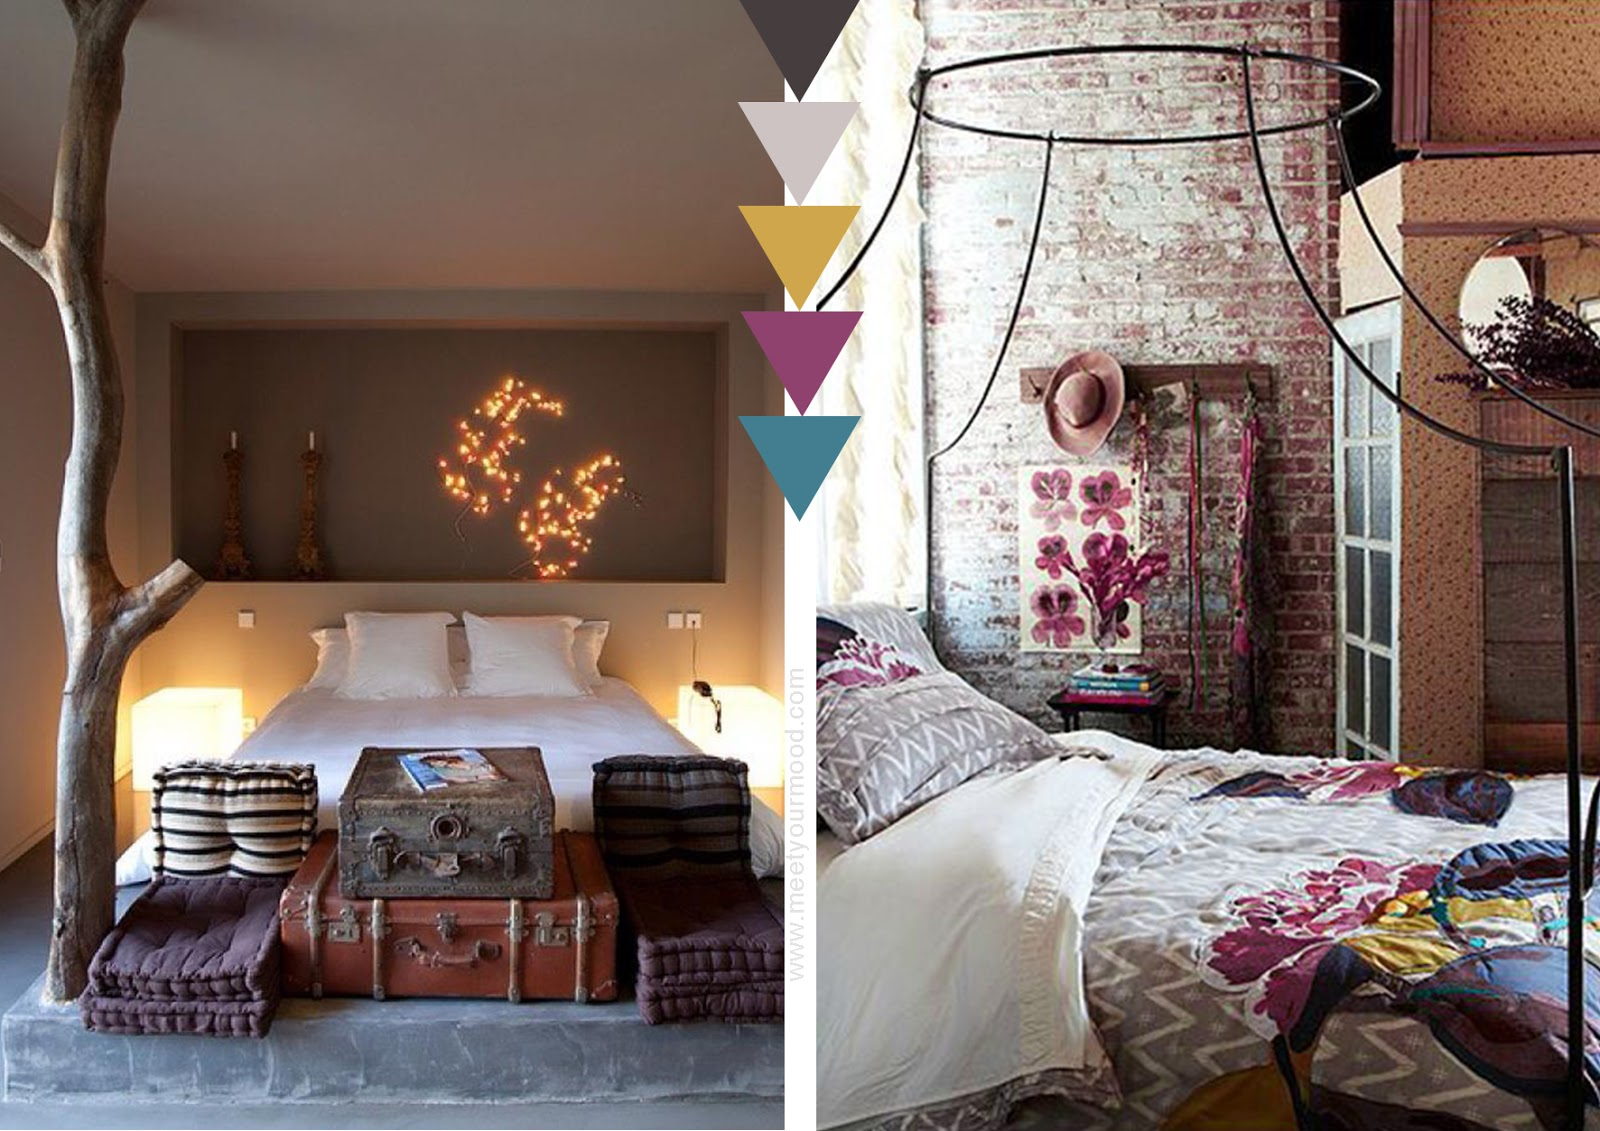 per una casa wild at heart MOOD con tendenza boho in poche, semplici ...